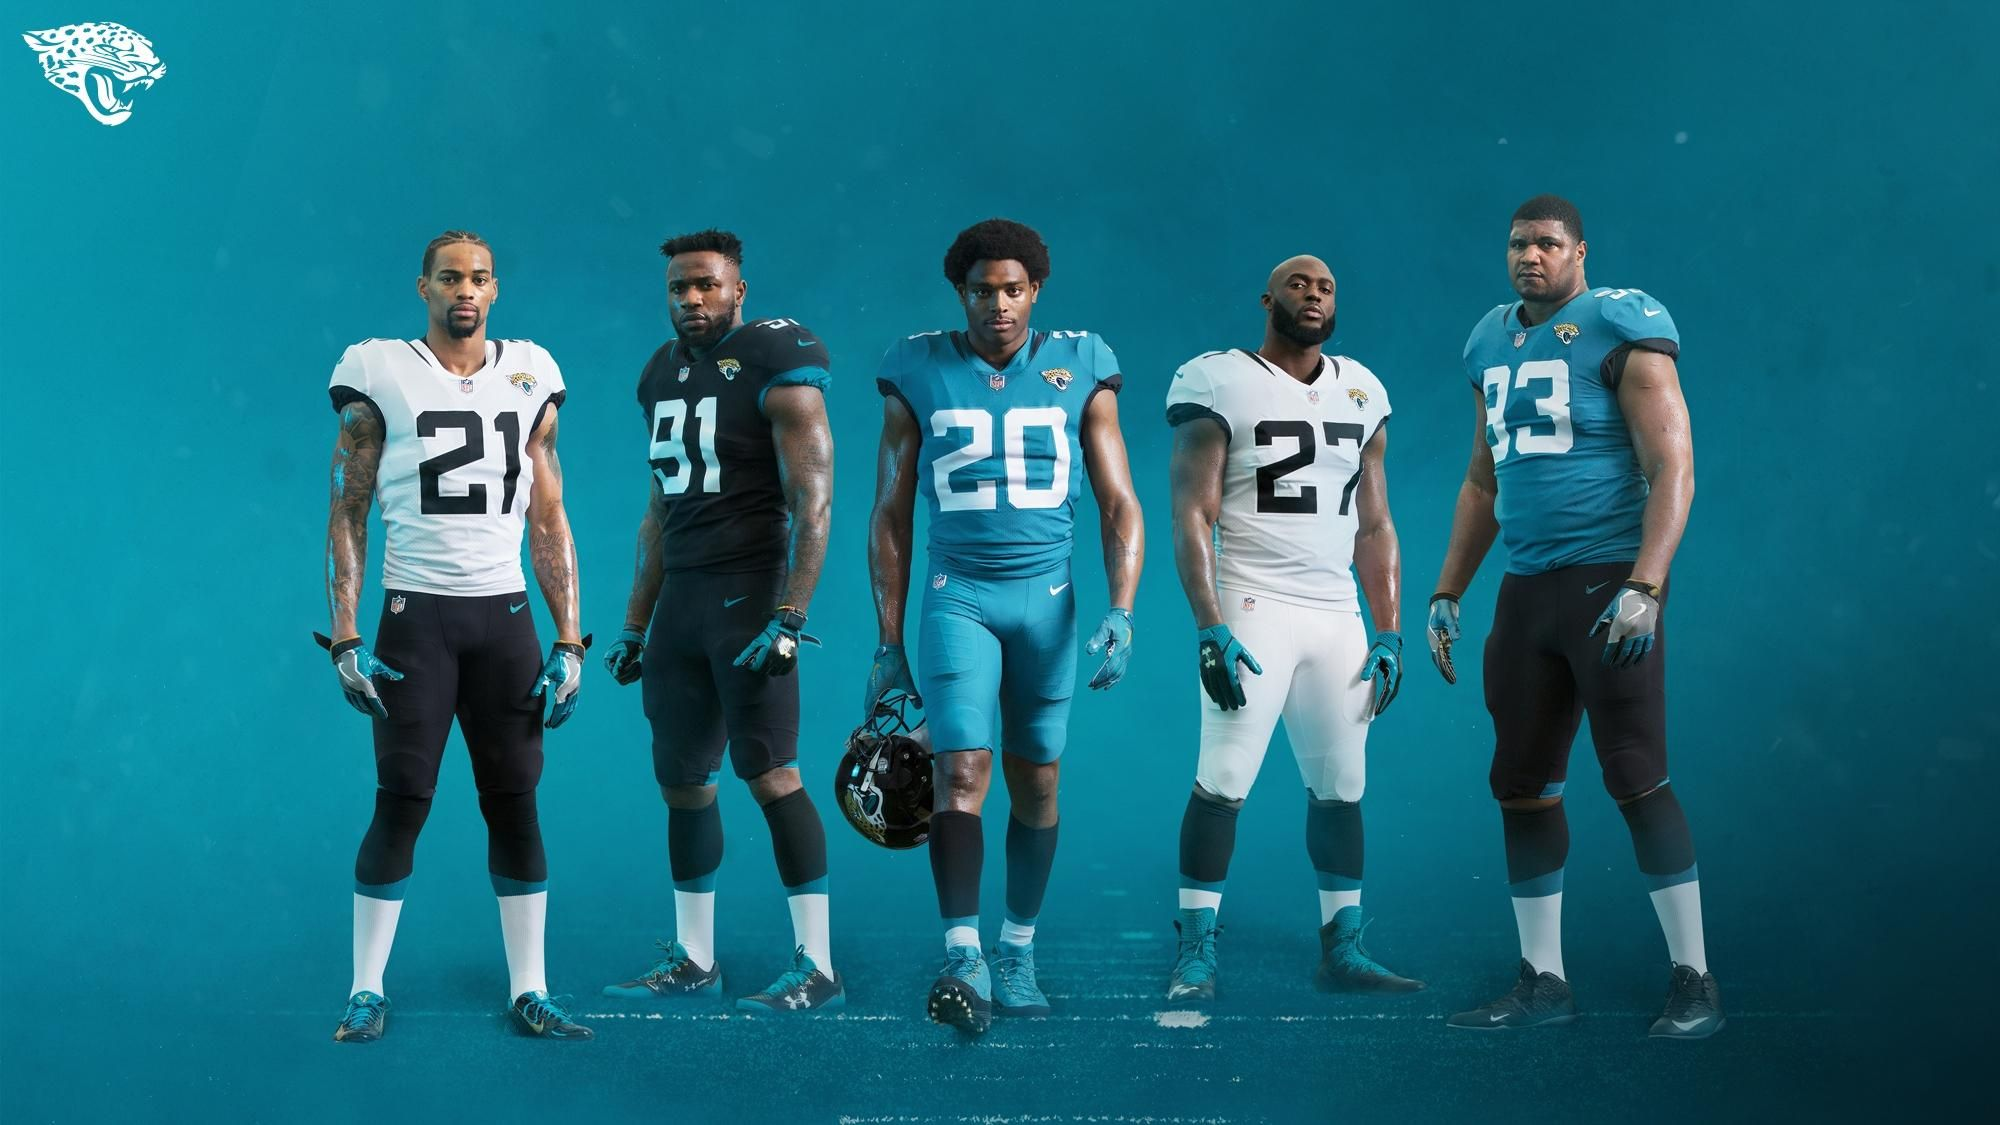 623075c5 Photos: Photos: Jaguars reveal new uniforms - The Florida Times-Union -  Jacksonville, FL